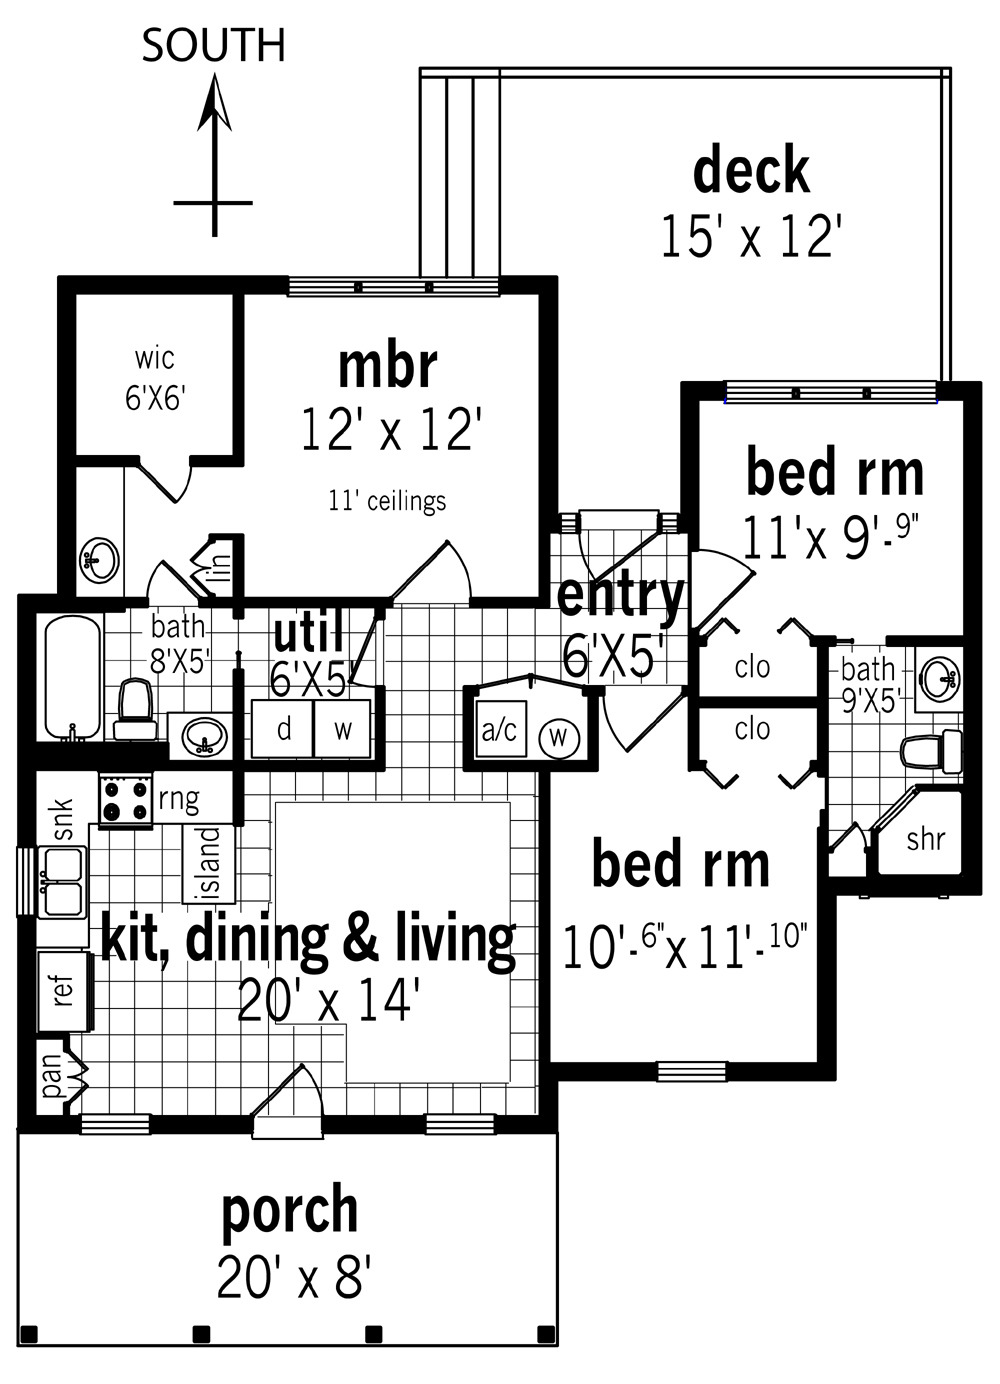 Design Home Floor Plans Online Free Unique Cottage House Plan with 3 Bedrooms and 2 5 Baths Plan 3162